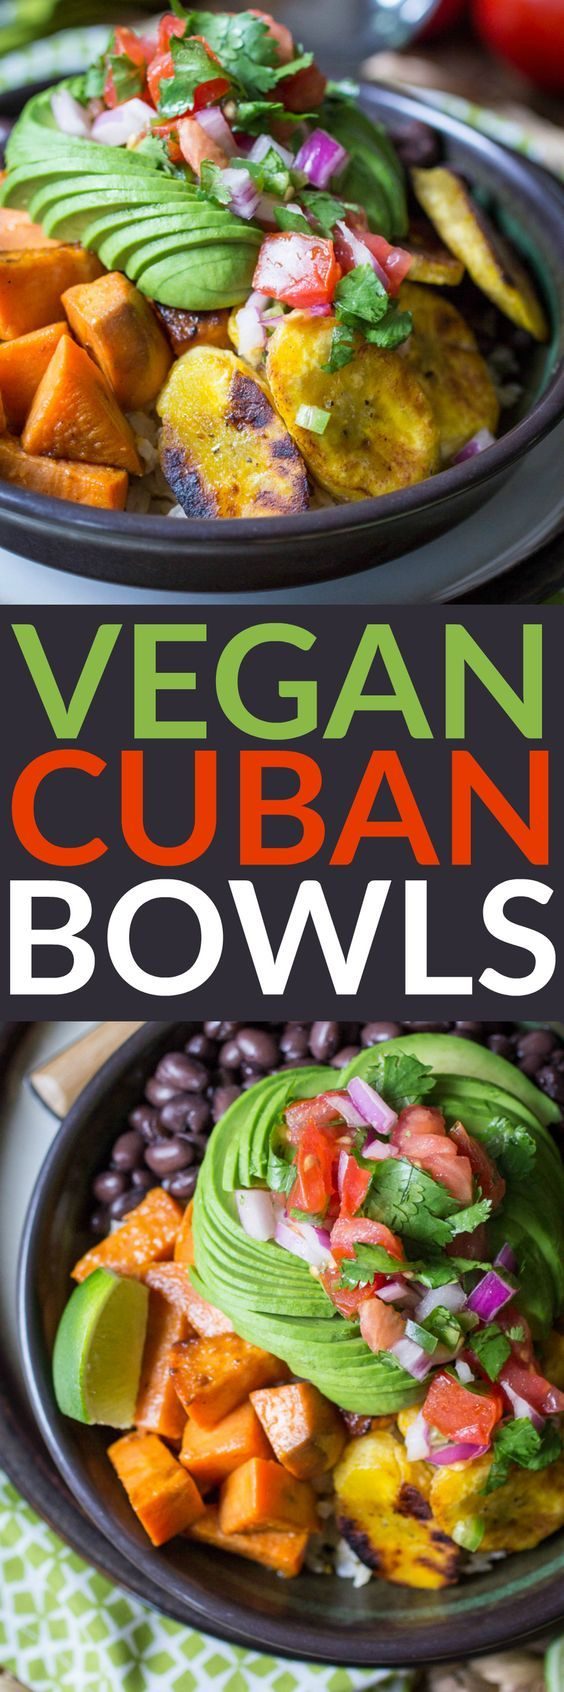 Vegan Cuban Bowls are perfect for Meatless Monday or anytime you're craving a healthy meal.